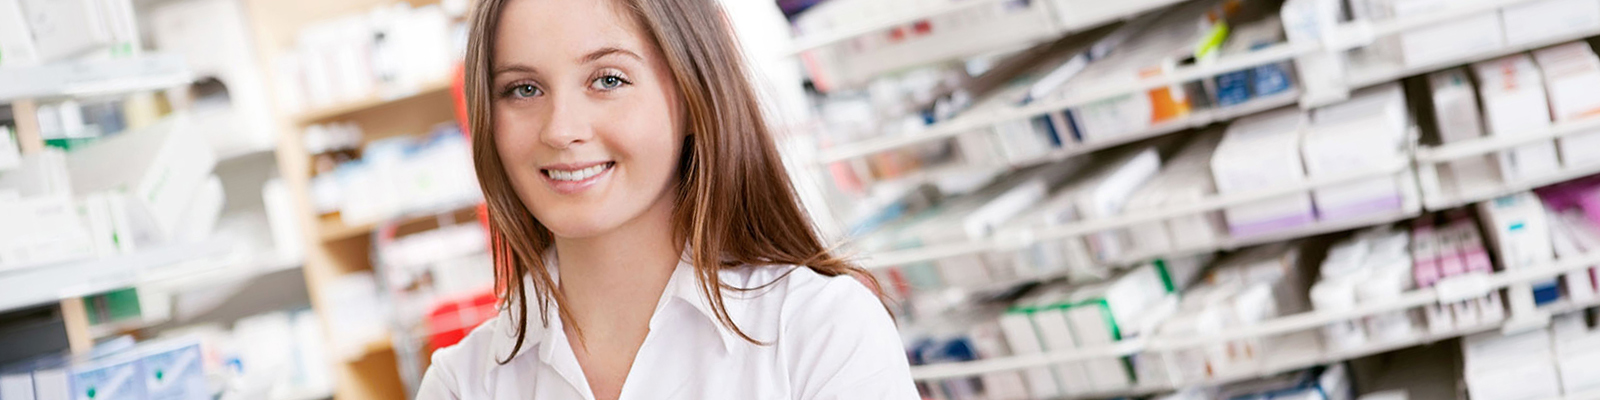 Young woman in posing in a pharmacy in front of rows of pills